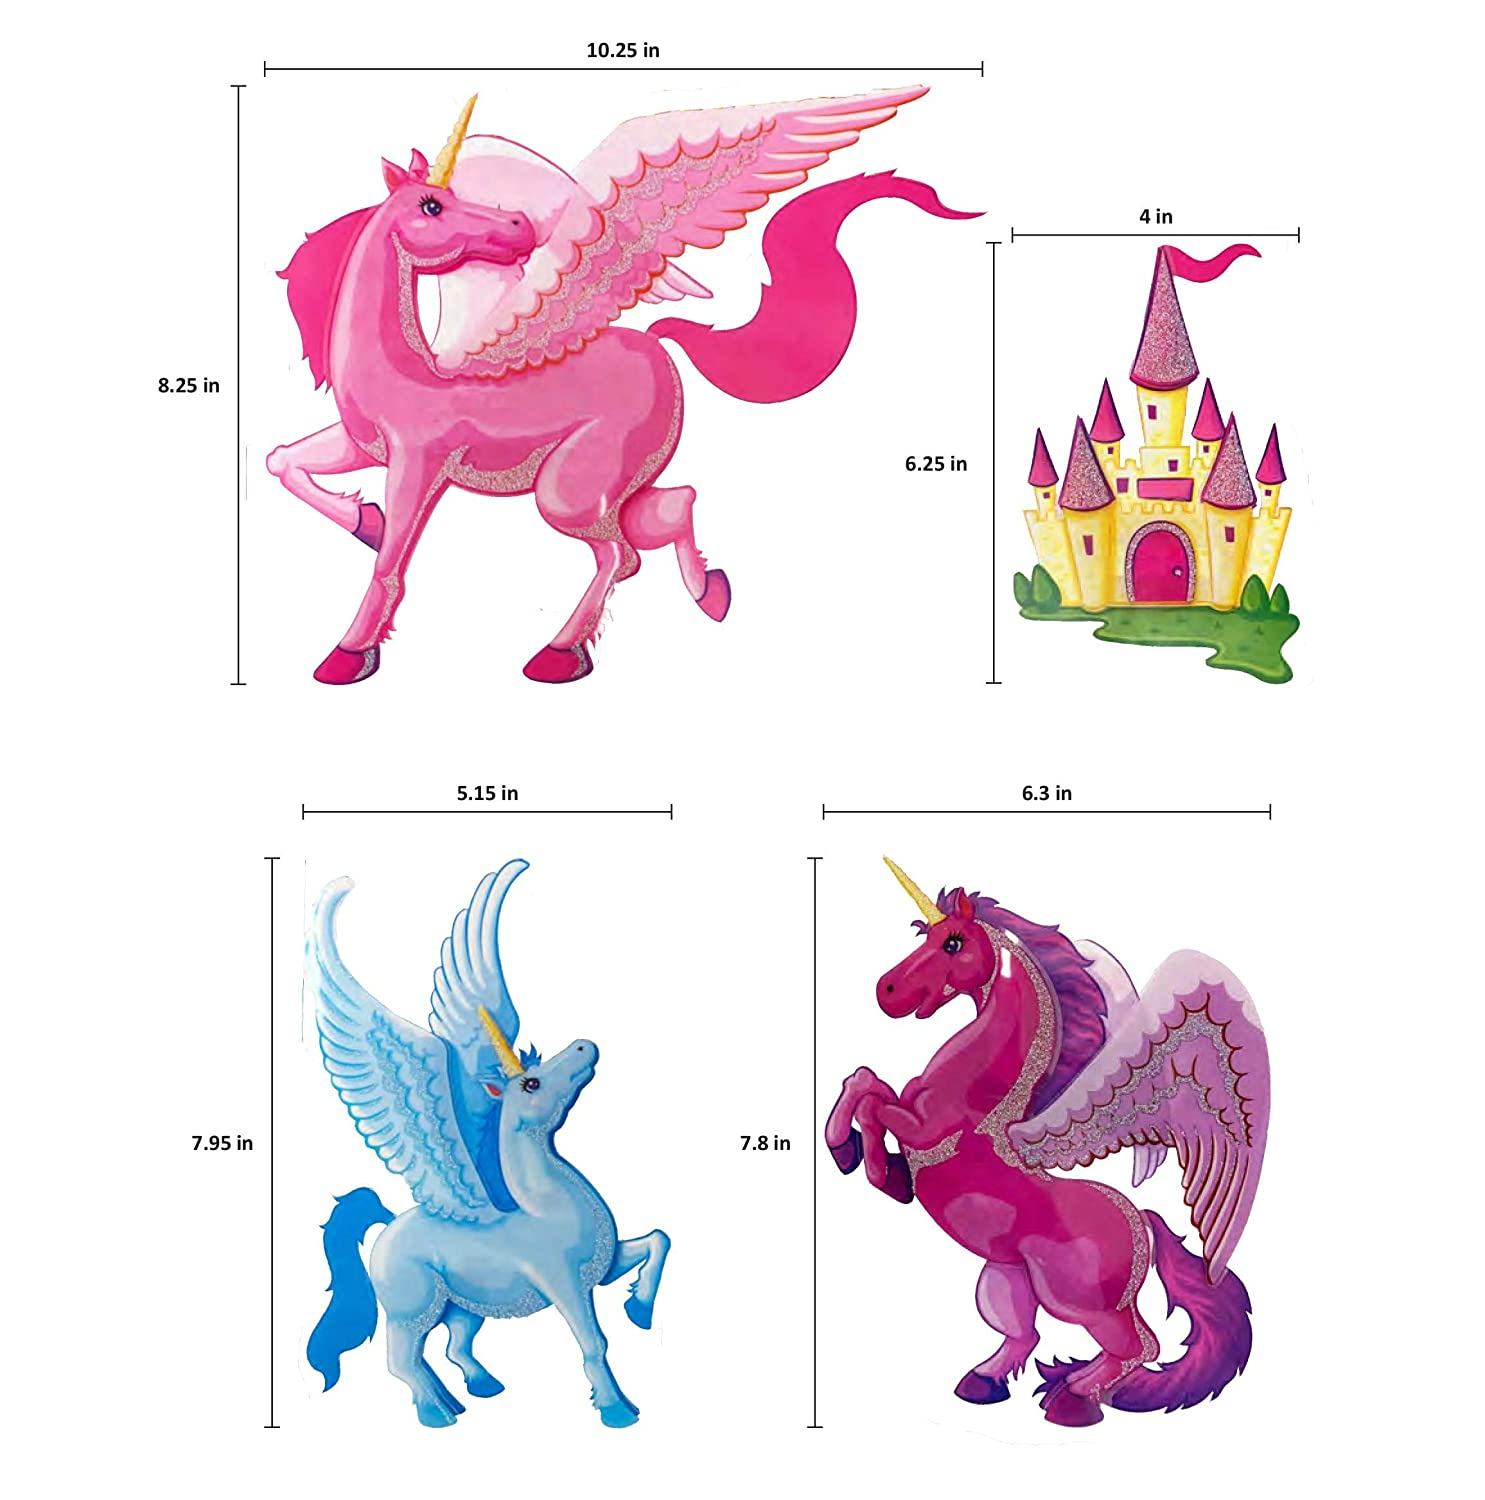 Set of 4 Easy to Stick Removable Wall Decals for Kids Teens Bedrooms Boys Girls Rooms Peel and Stick Spectacular 3D Wall Decor Unicorn Wall Decal Stickers